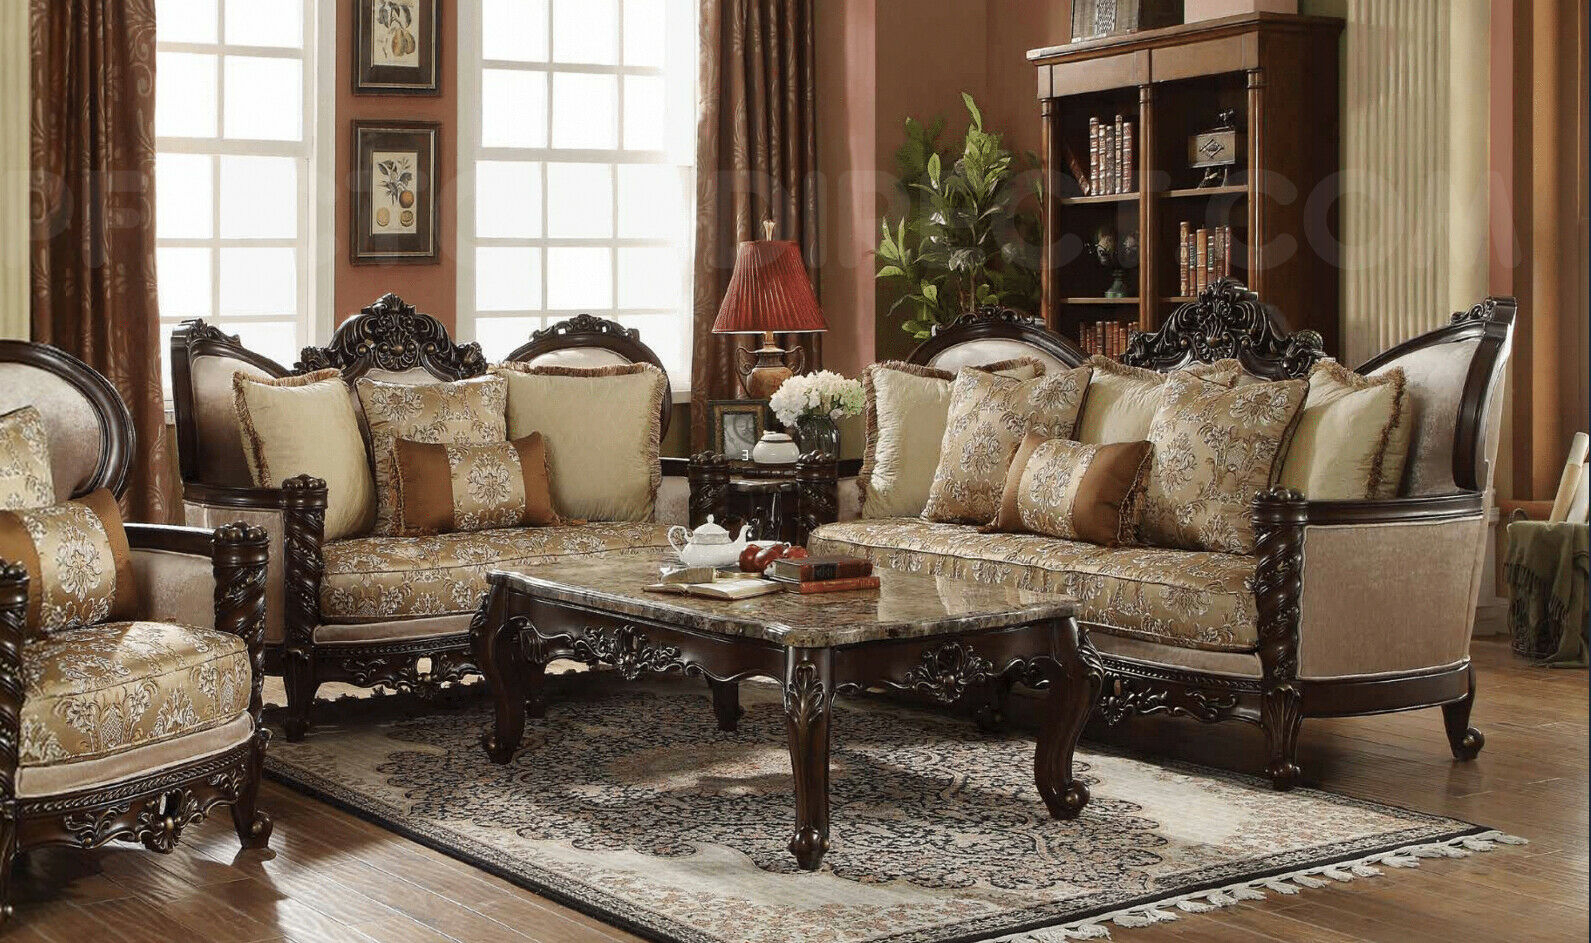 New Classic Victorian Carved Antique Style Luxury Living Room Sofalove Seat Set in Victorian Style Living Room Set